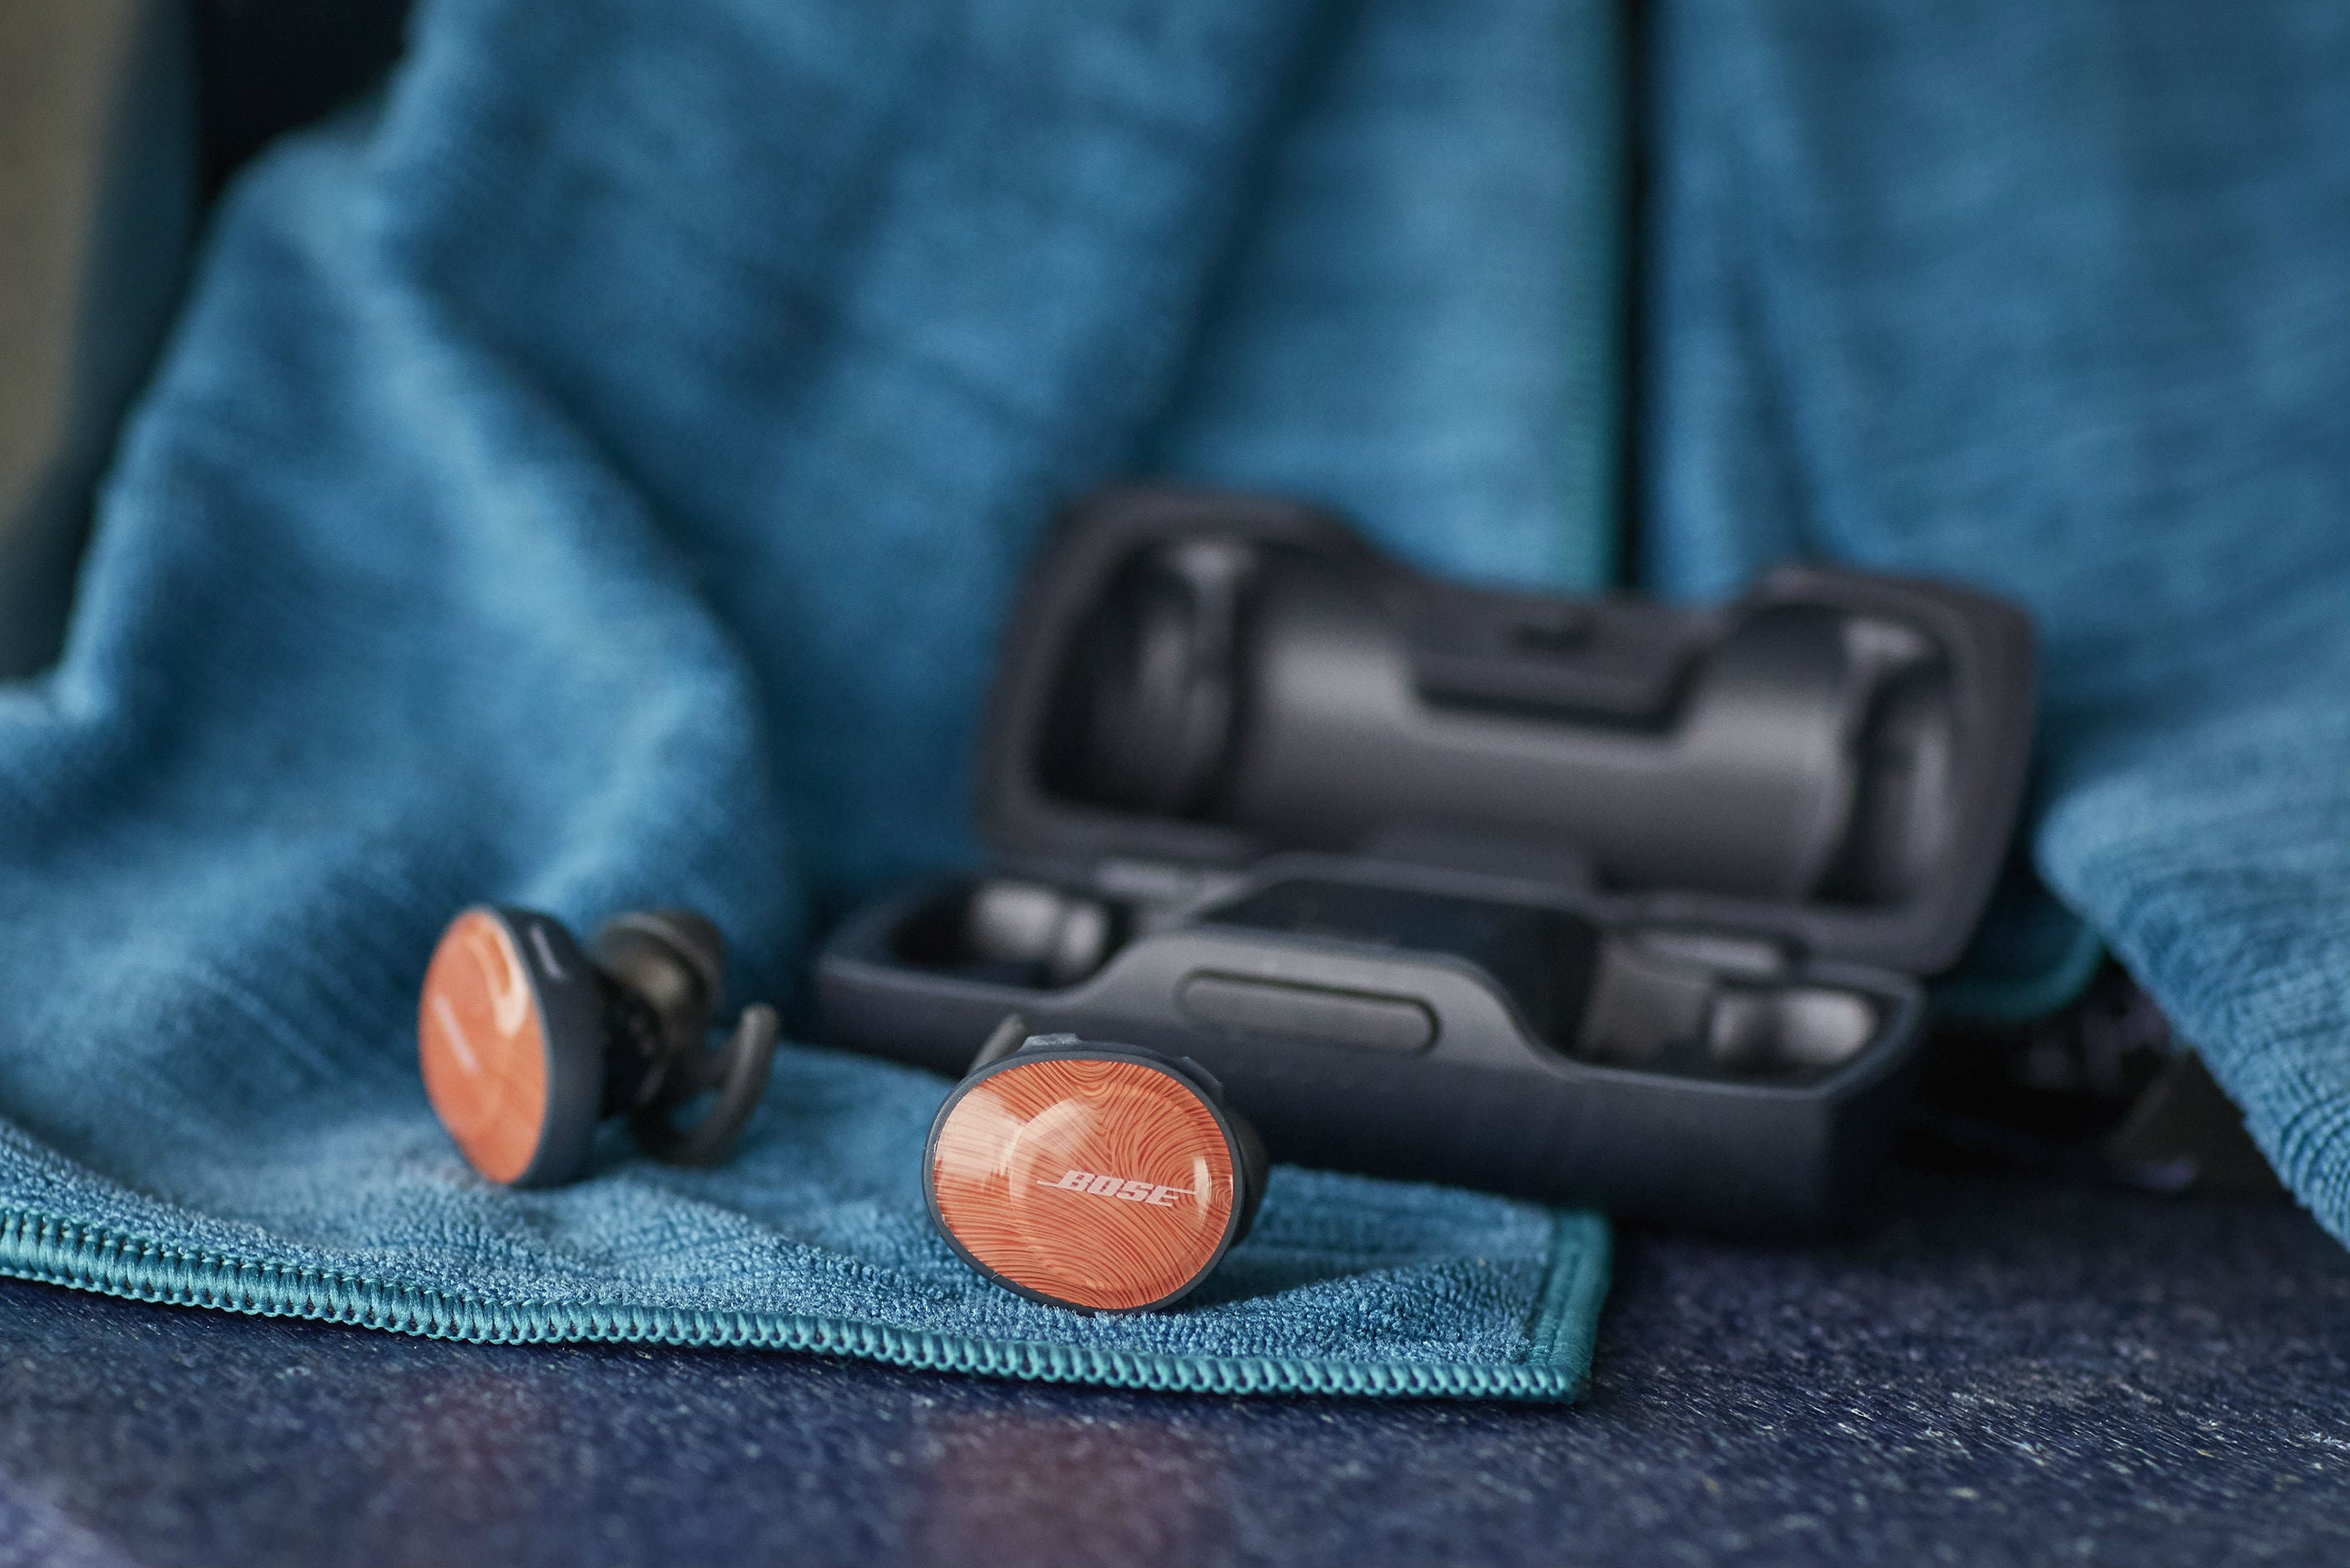 Bose Just Launched What Look Like The Ultimate Gym Headphones Soundsport Free Wireless Earphone Orange